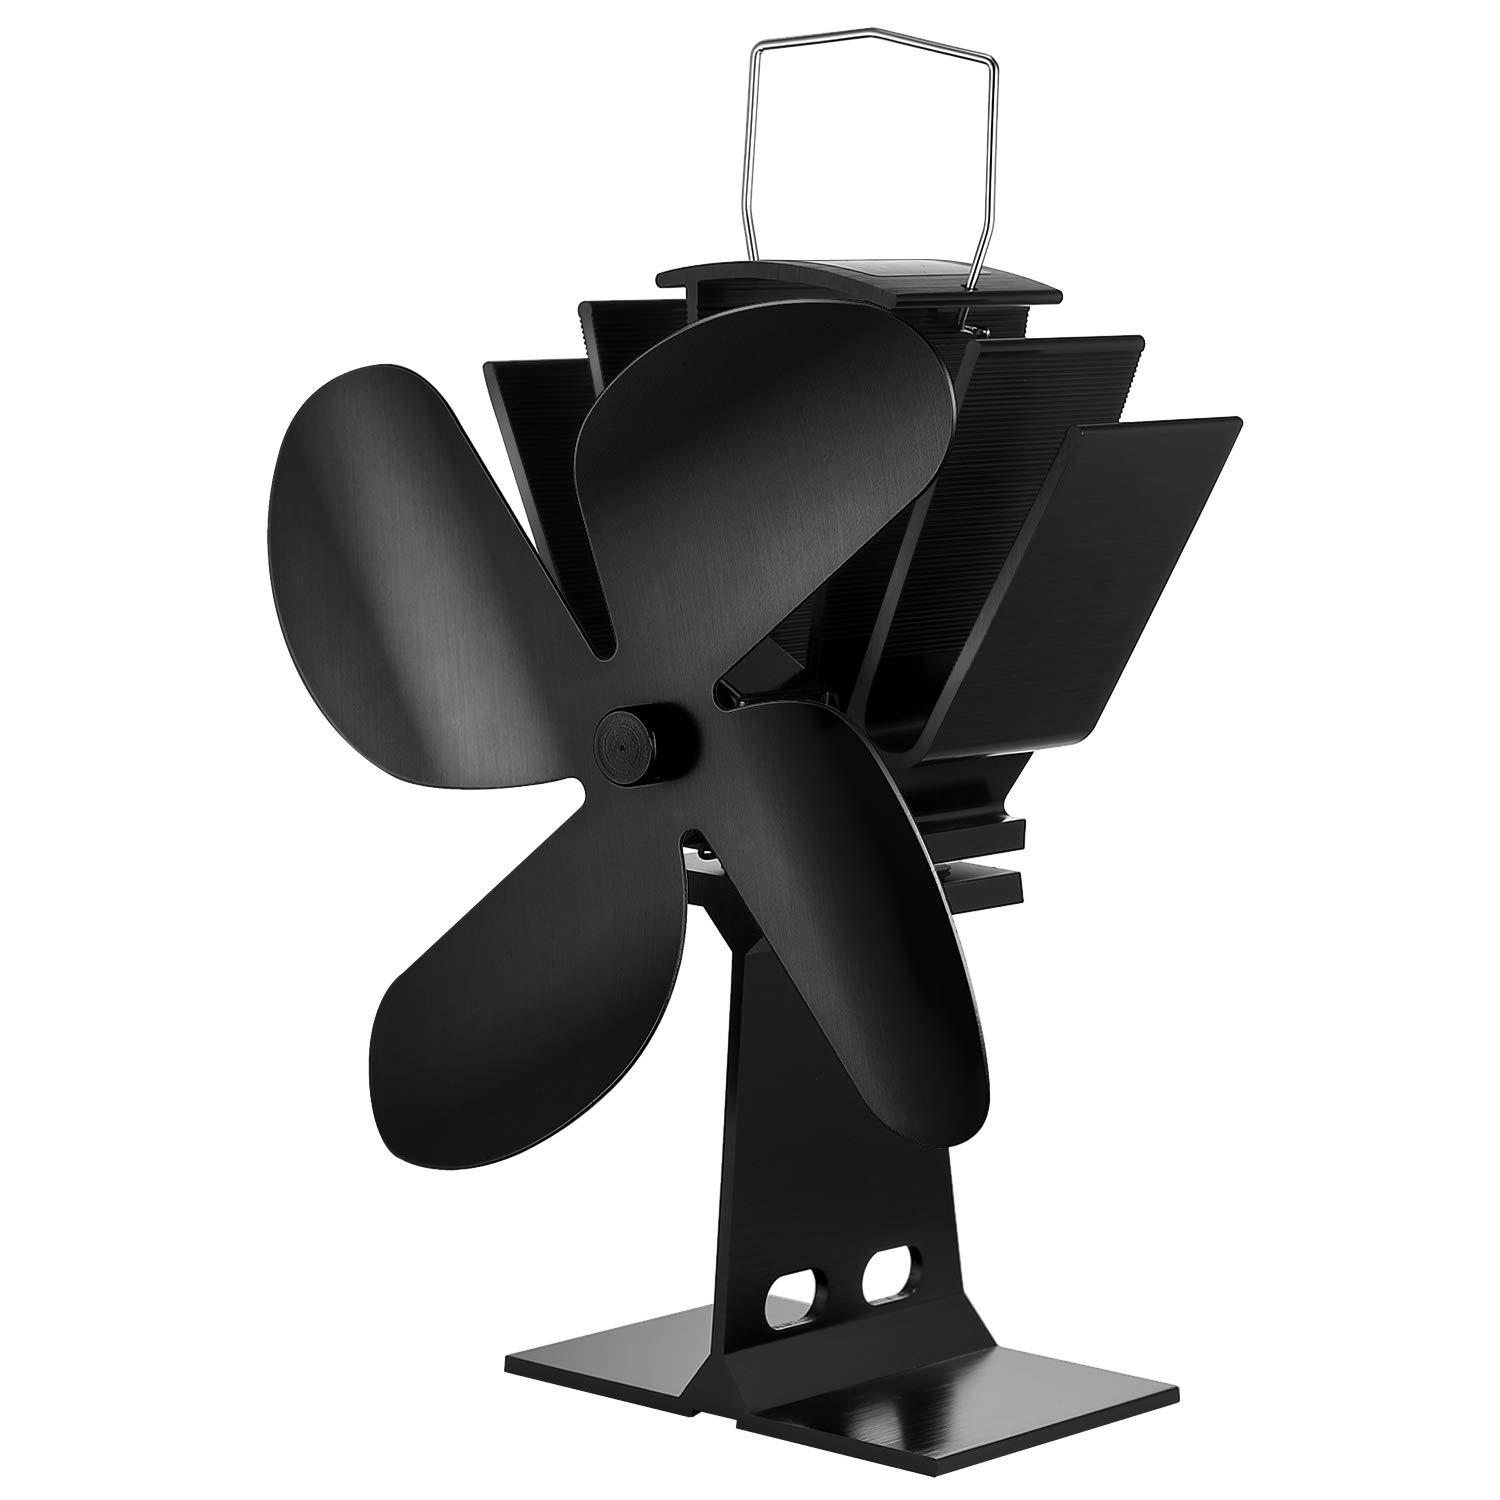 JYDMIX Stove Fan- 4-Blade Heat Powered Wood Burning Stove Fan for Log Burner/Fireplace-Quietly and Efficiently Heat Distribution by JYDMIX